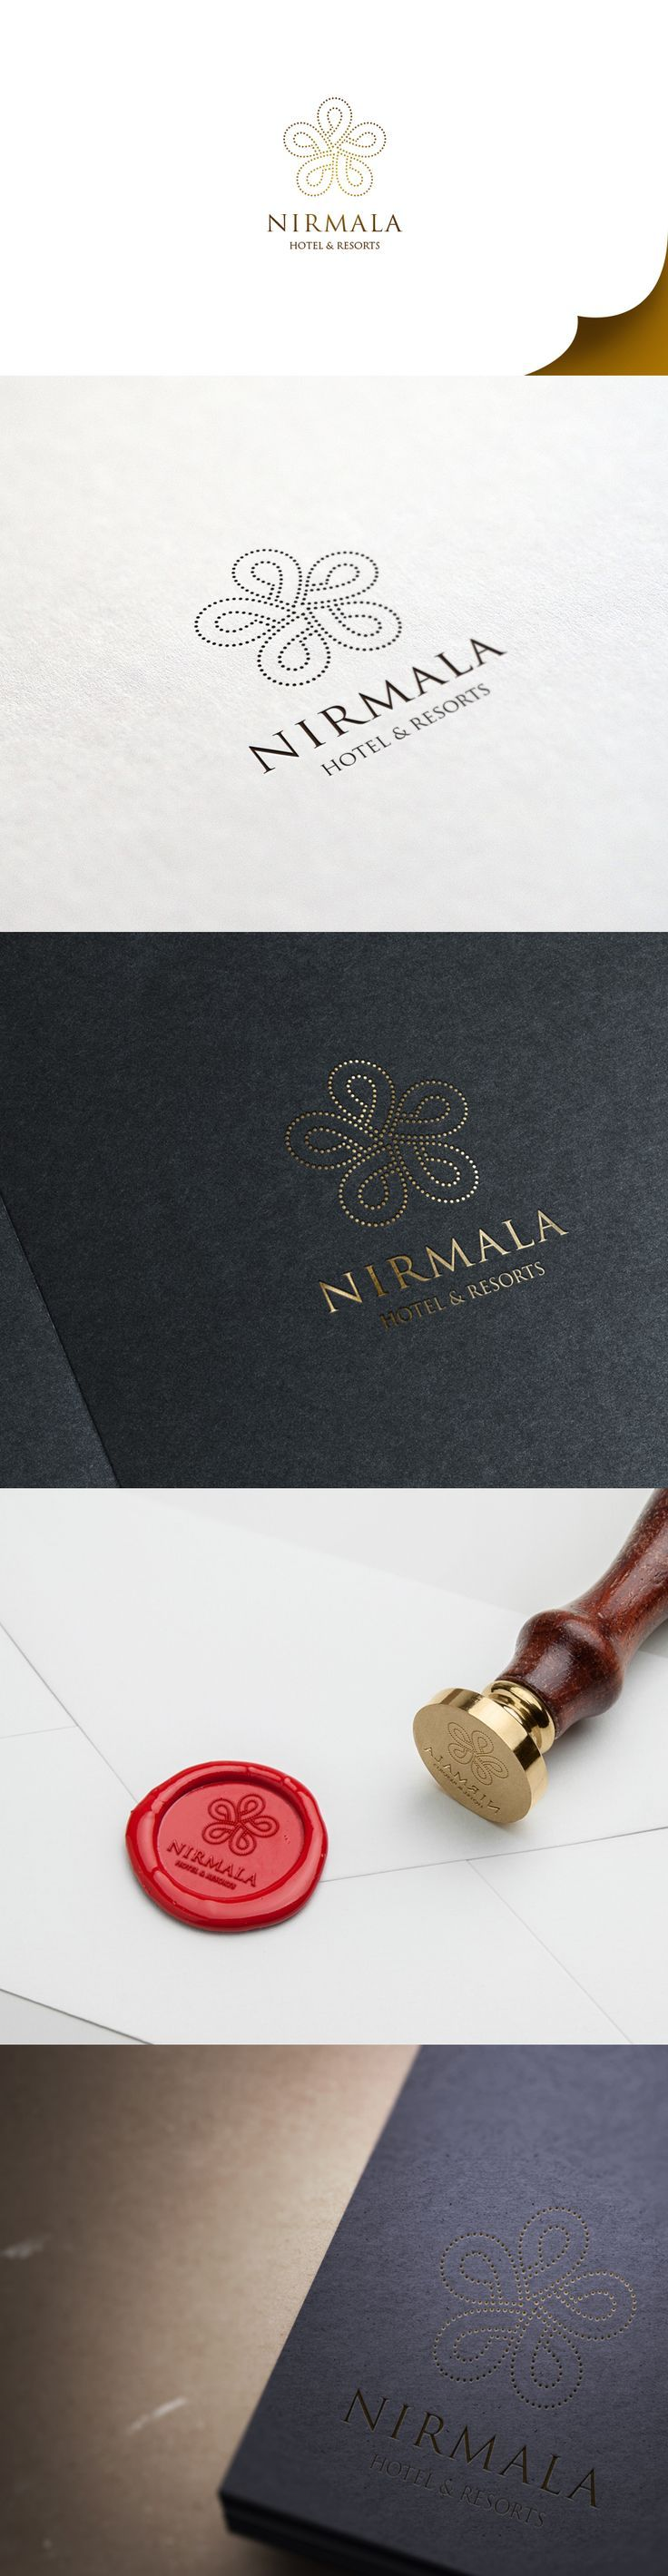 """""""Nirmala Hotel & Resorts"""". Kind of a traditional looking logo design which we have used a floral looking theme & mostly dark brown colors."""